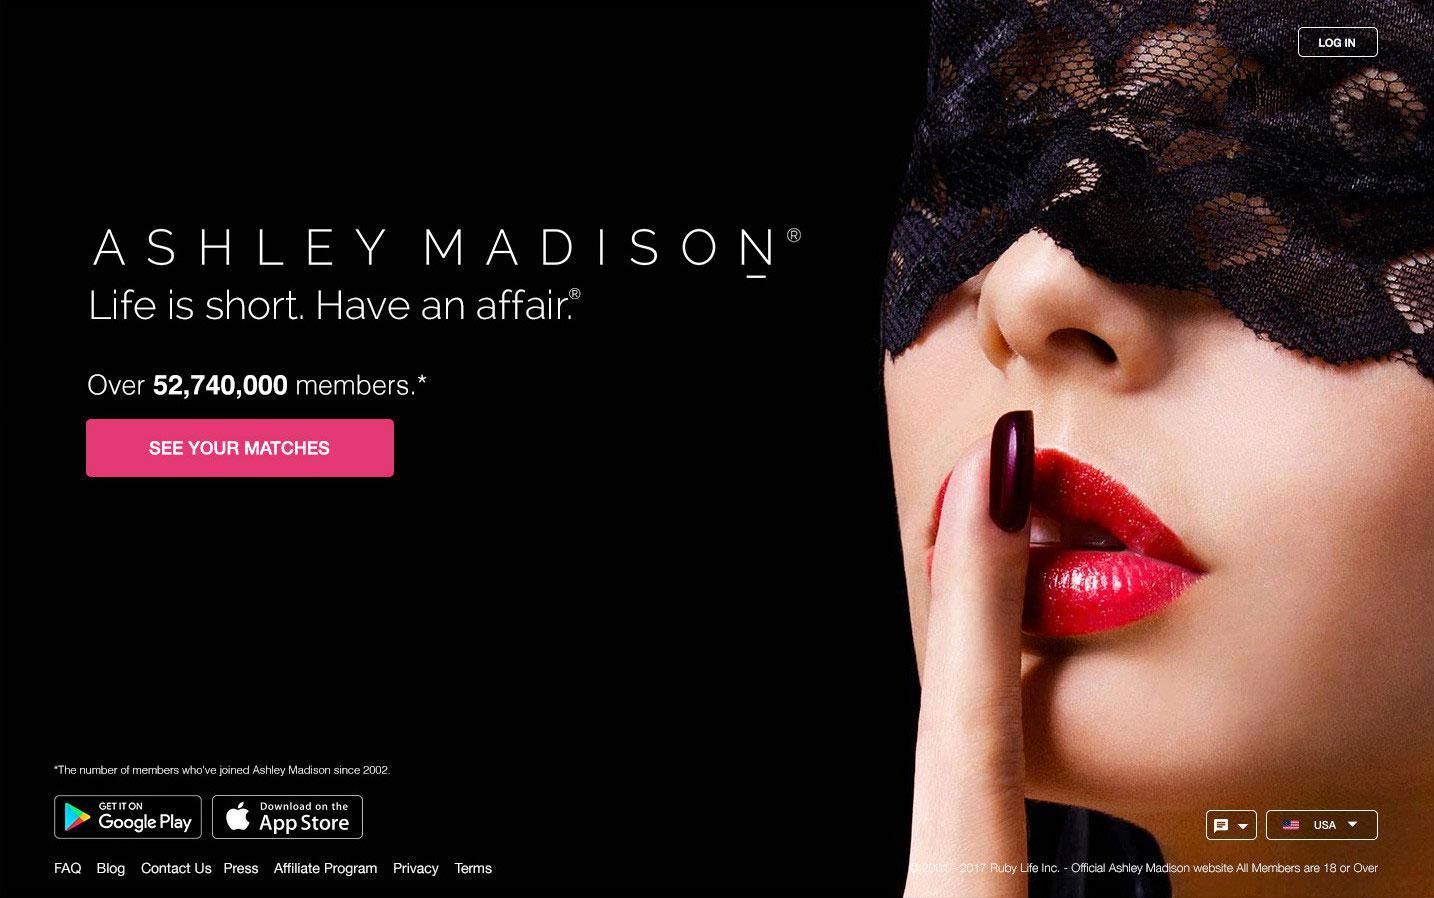 20236c56465945e3bae5e73ae1904d52 Affair app Ashley Madison 'threatens to sue one-night stand website CasualX' for nicking its raunchy slogan